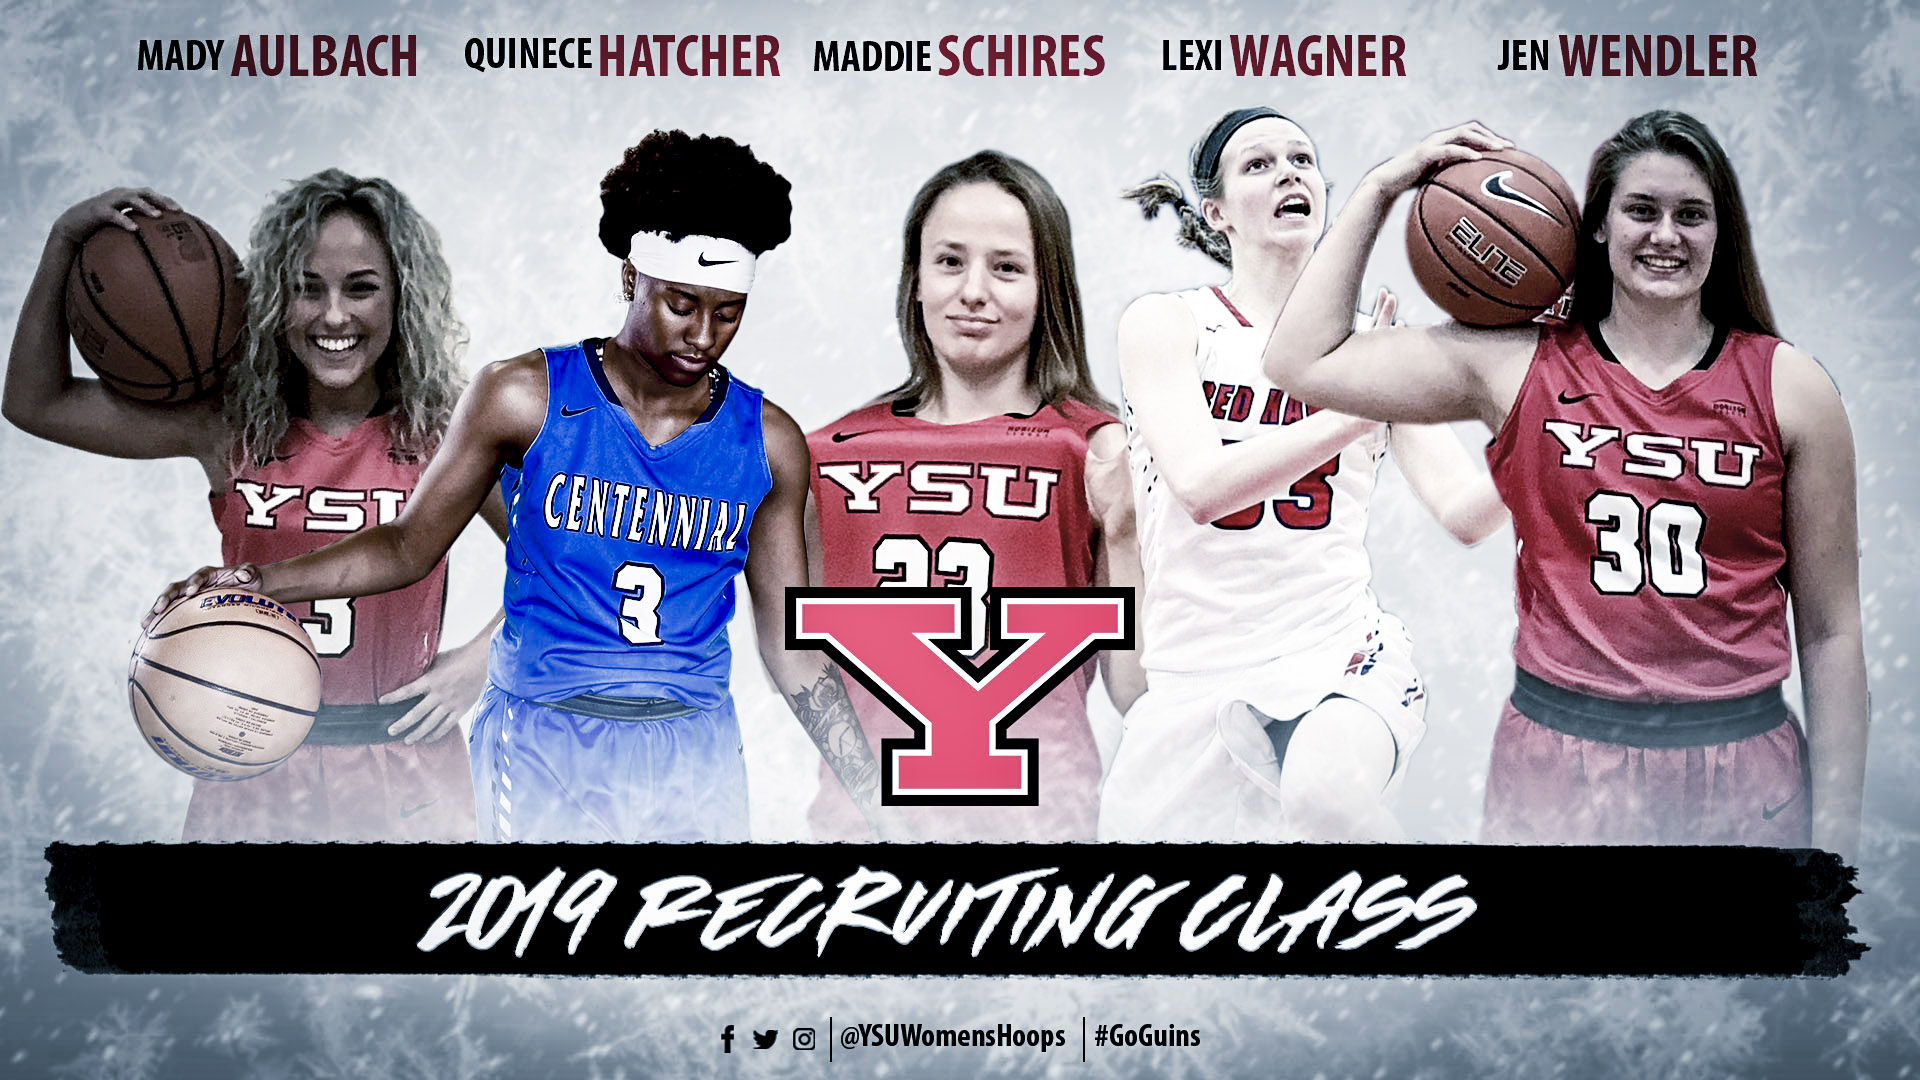 YSU Women's Basketball - 2019 Recruiting Class